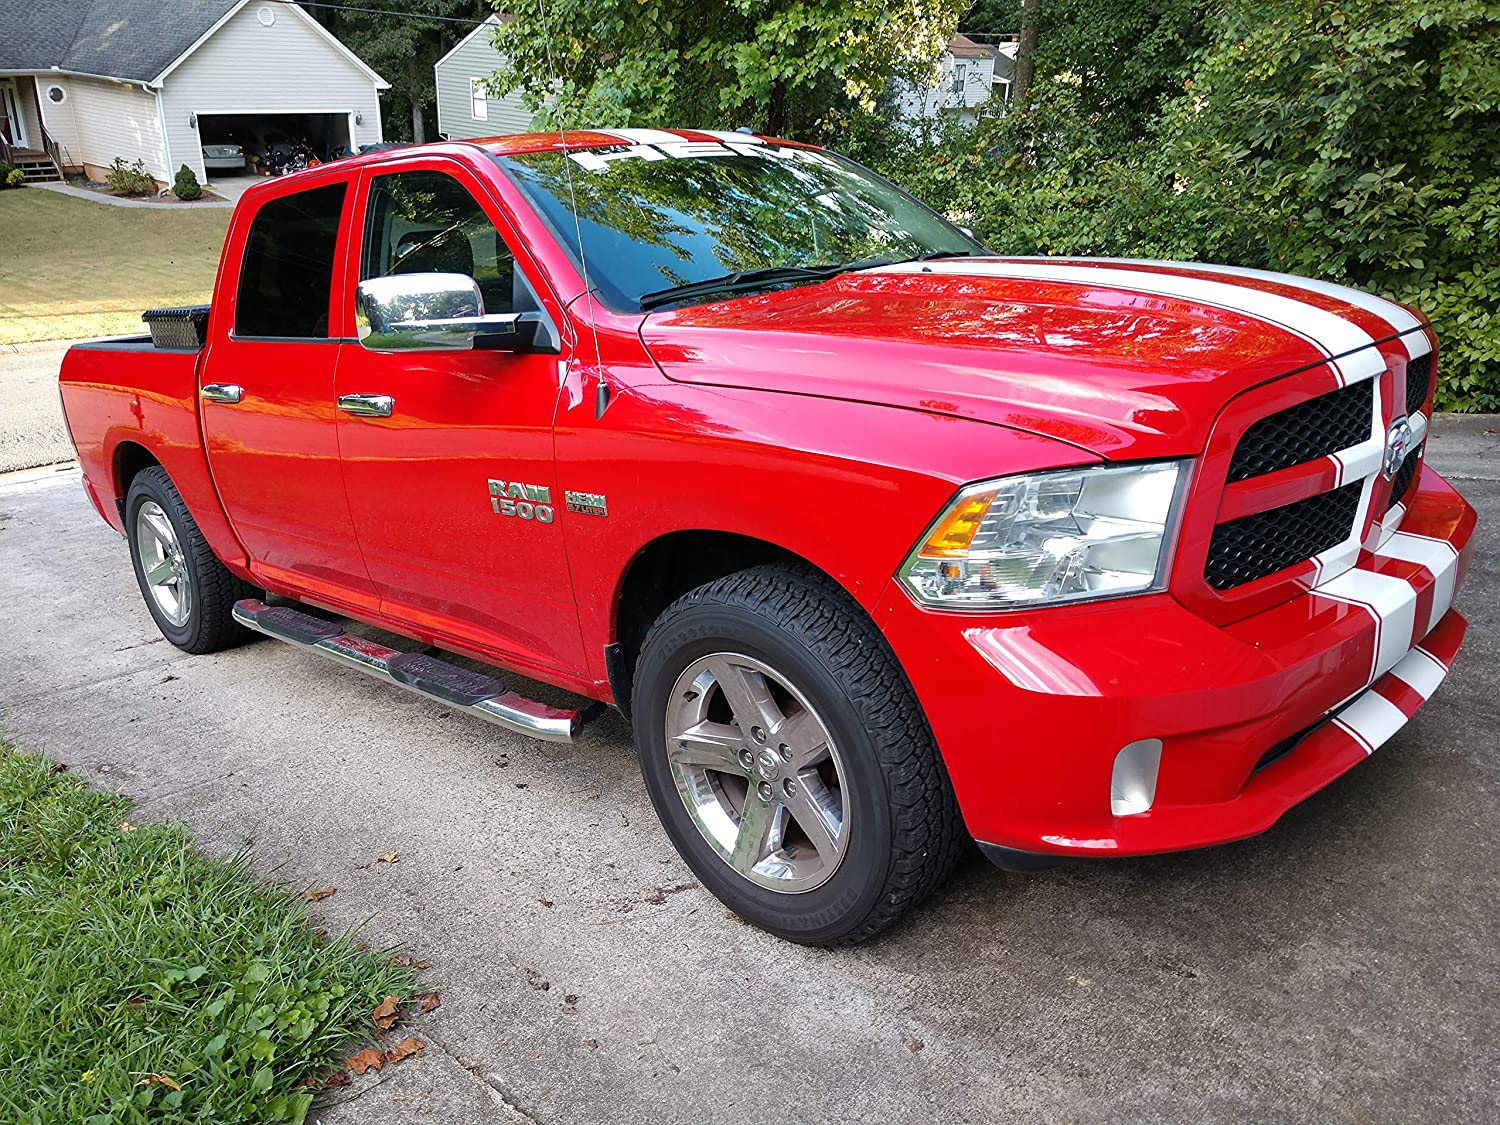 Mifeier 5 Curved Nerf Bars Side Steps Running Boards Fit 09-17 Dodge Ram 1500 Crew Cab With 4 Full Size Doors